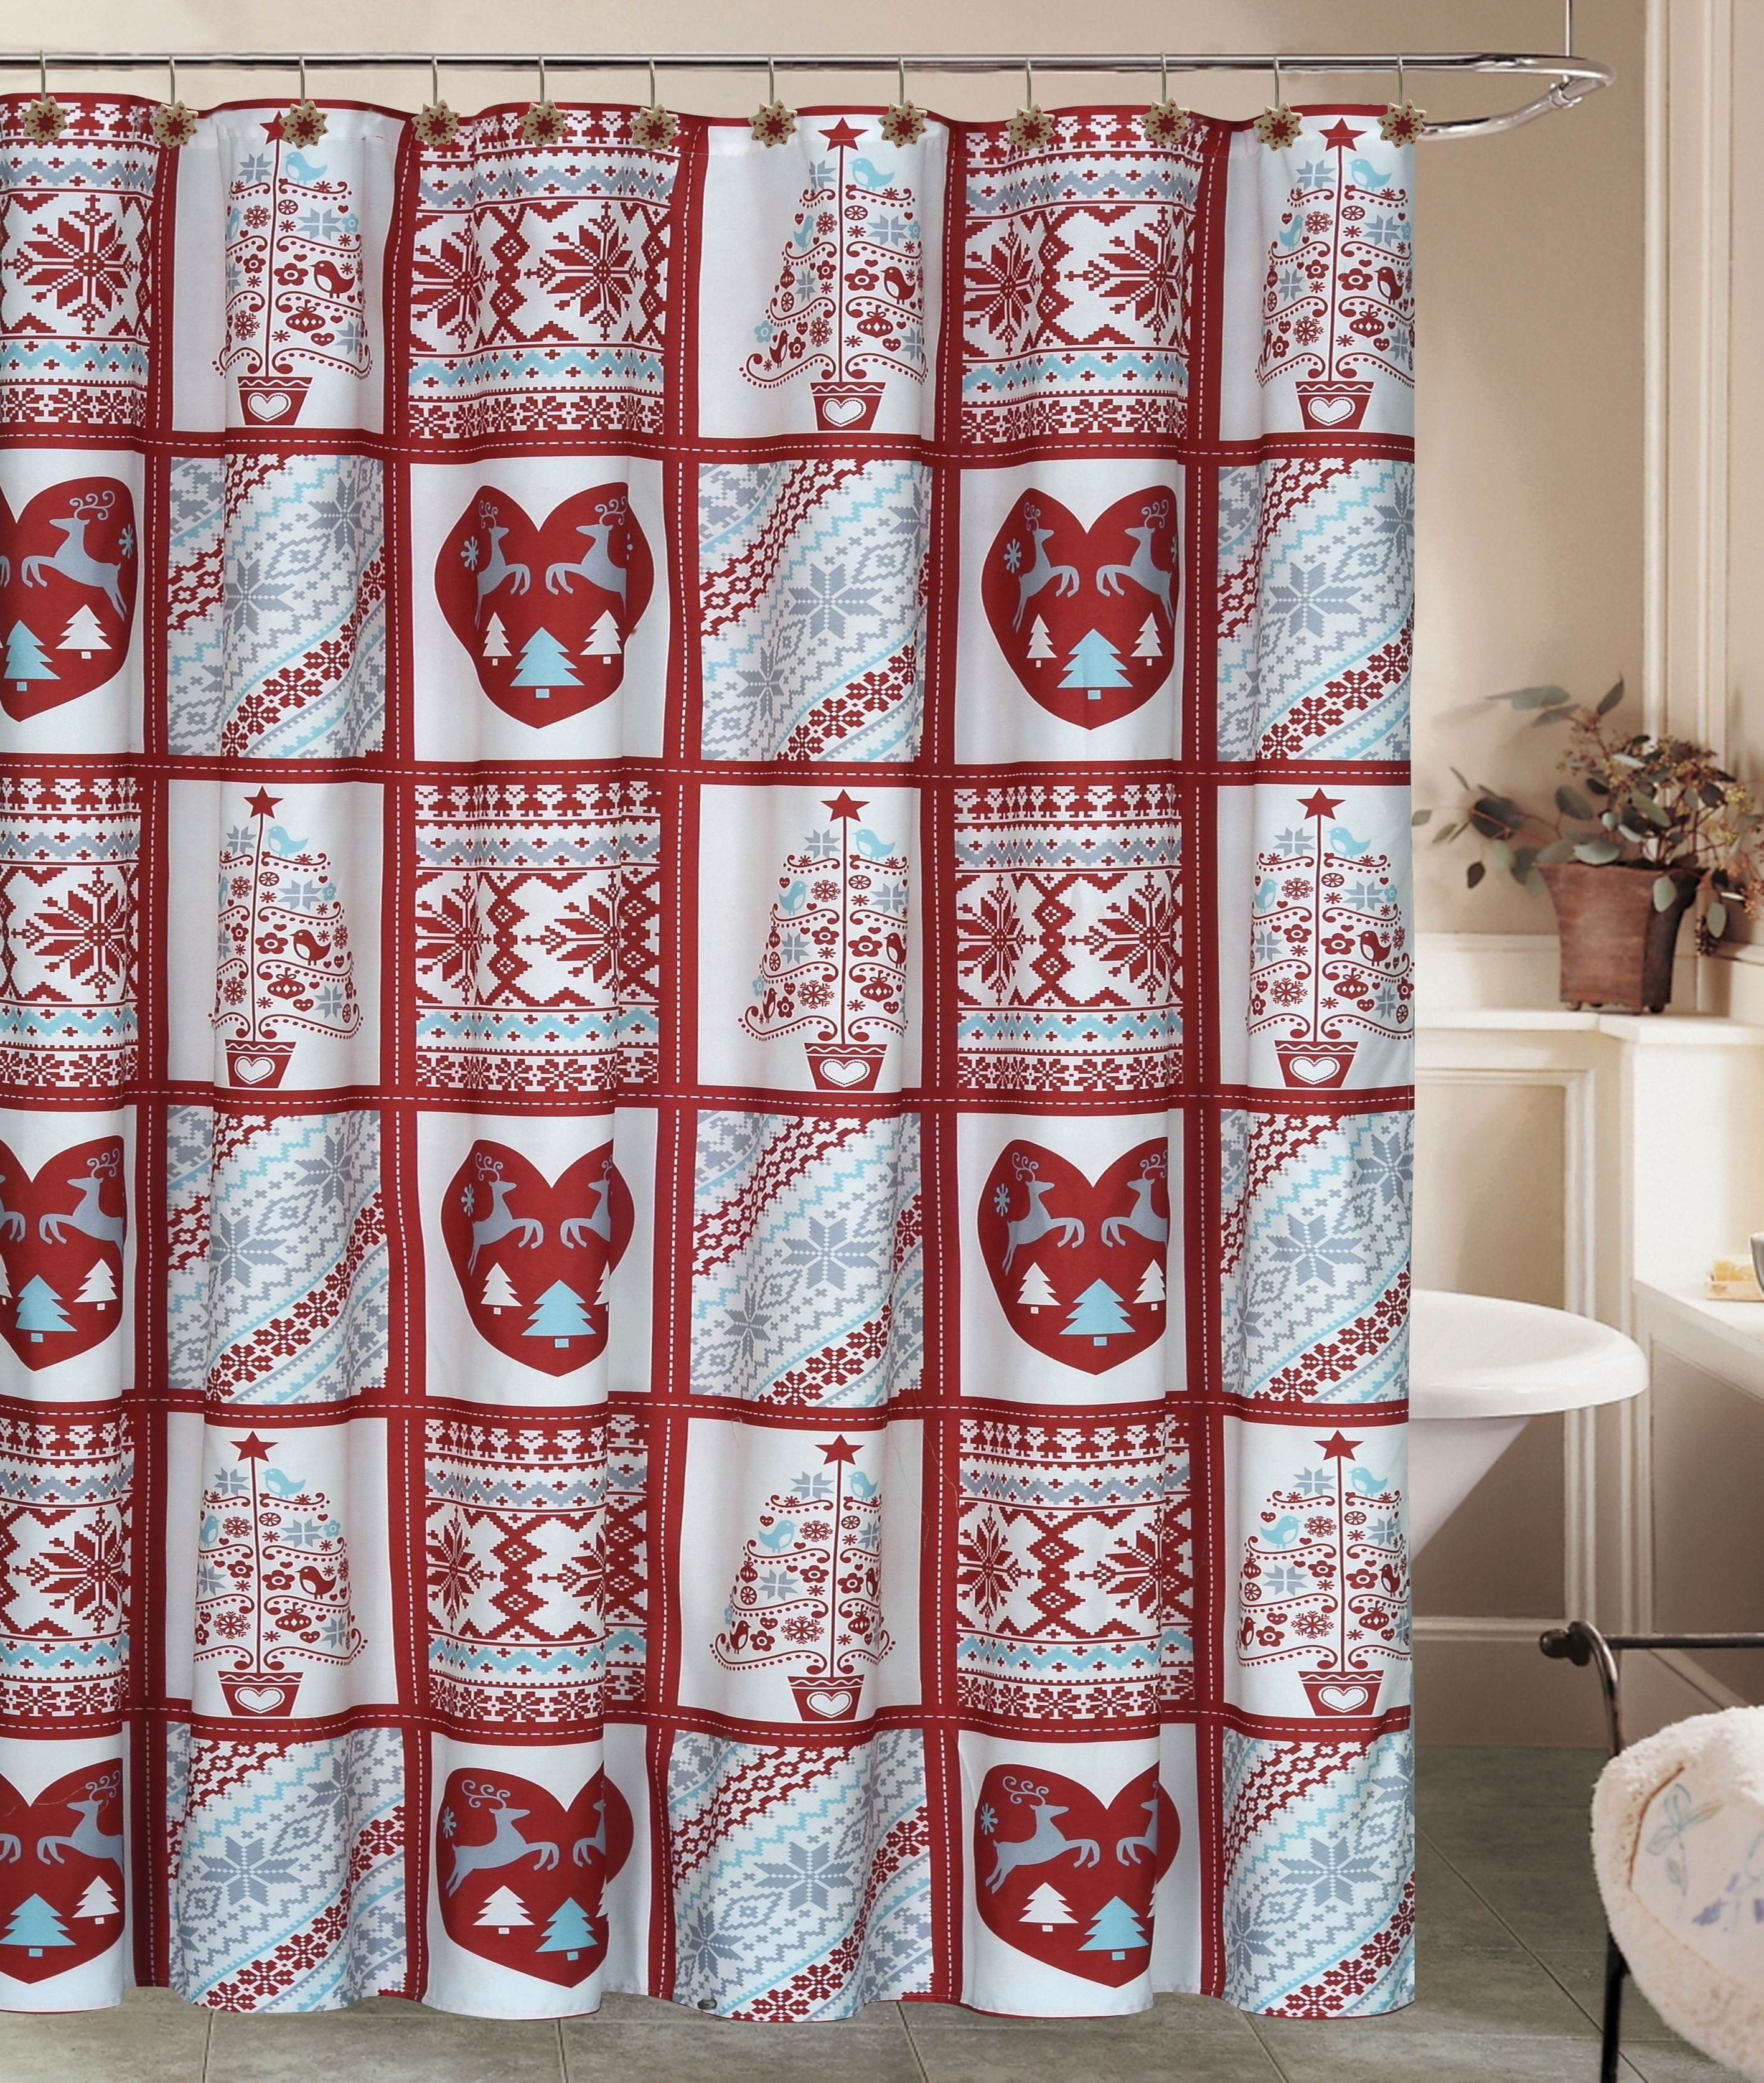 Beatrice Christmas Holiday Fair Isle Snowflake Shower Curtain With 12 Resin Hook Rings Bathroom Set